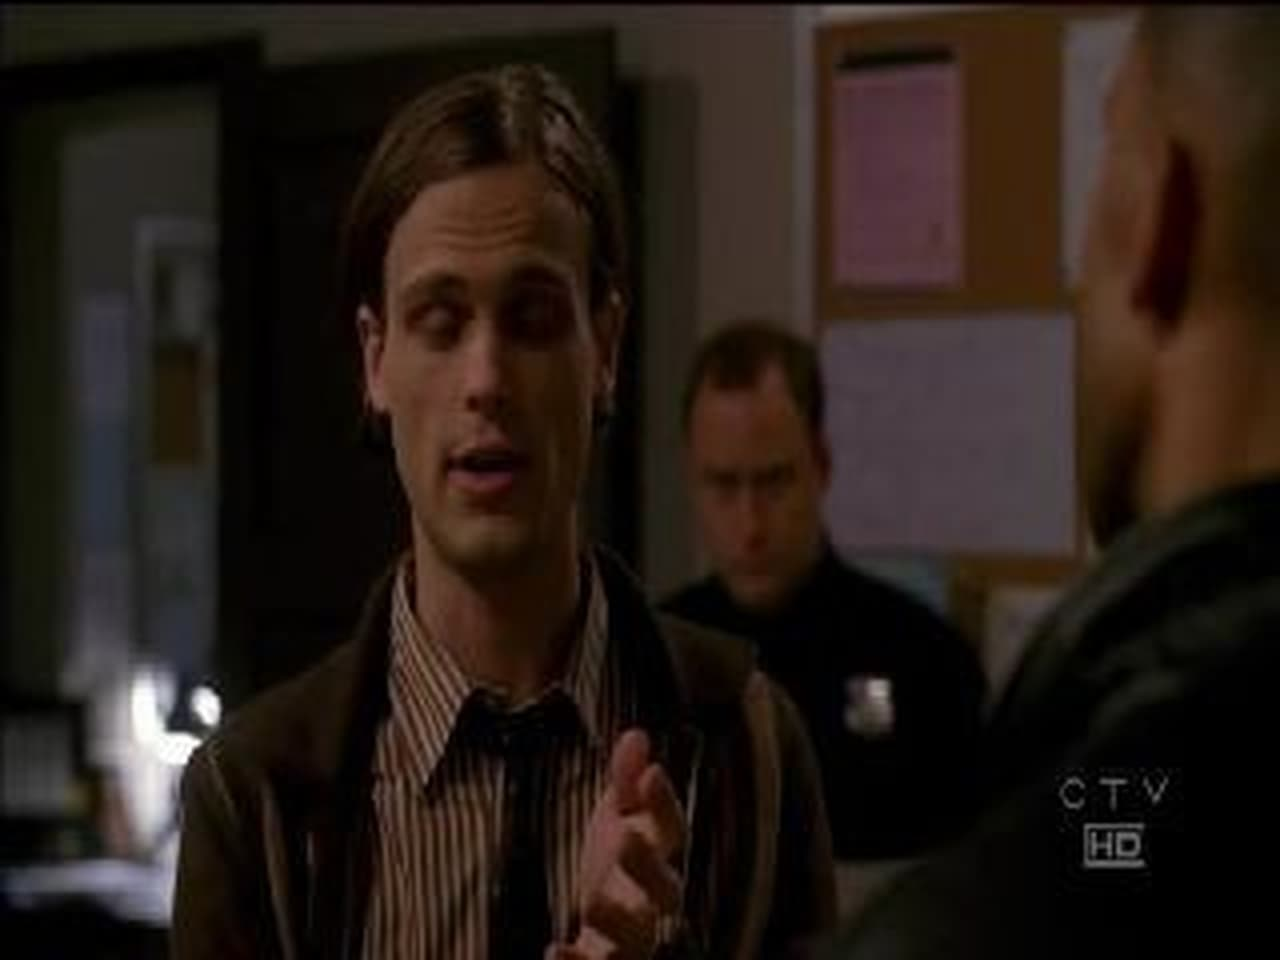 Criminal Minds - Season 1 Episode 12 : What Fresh Hell